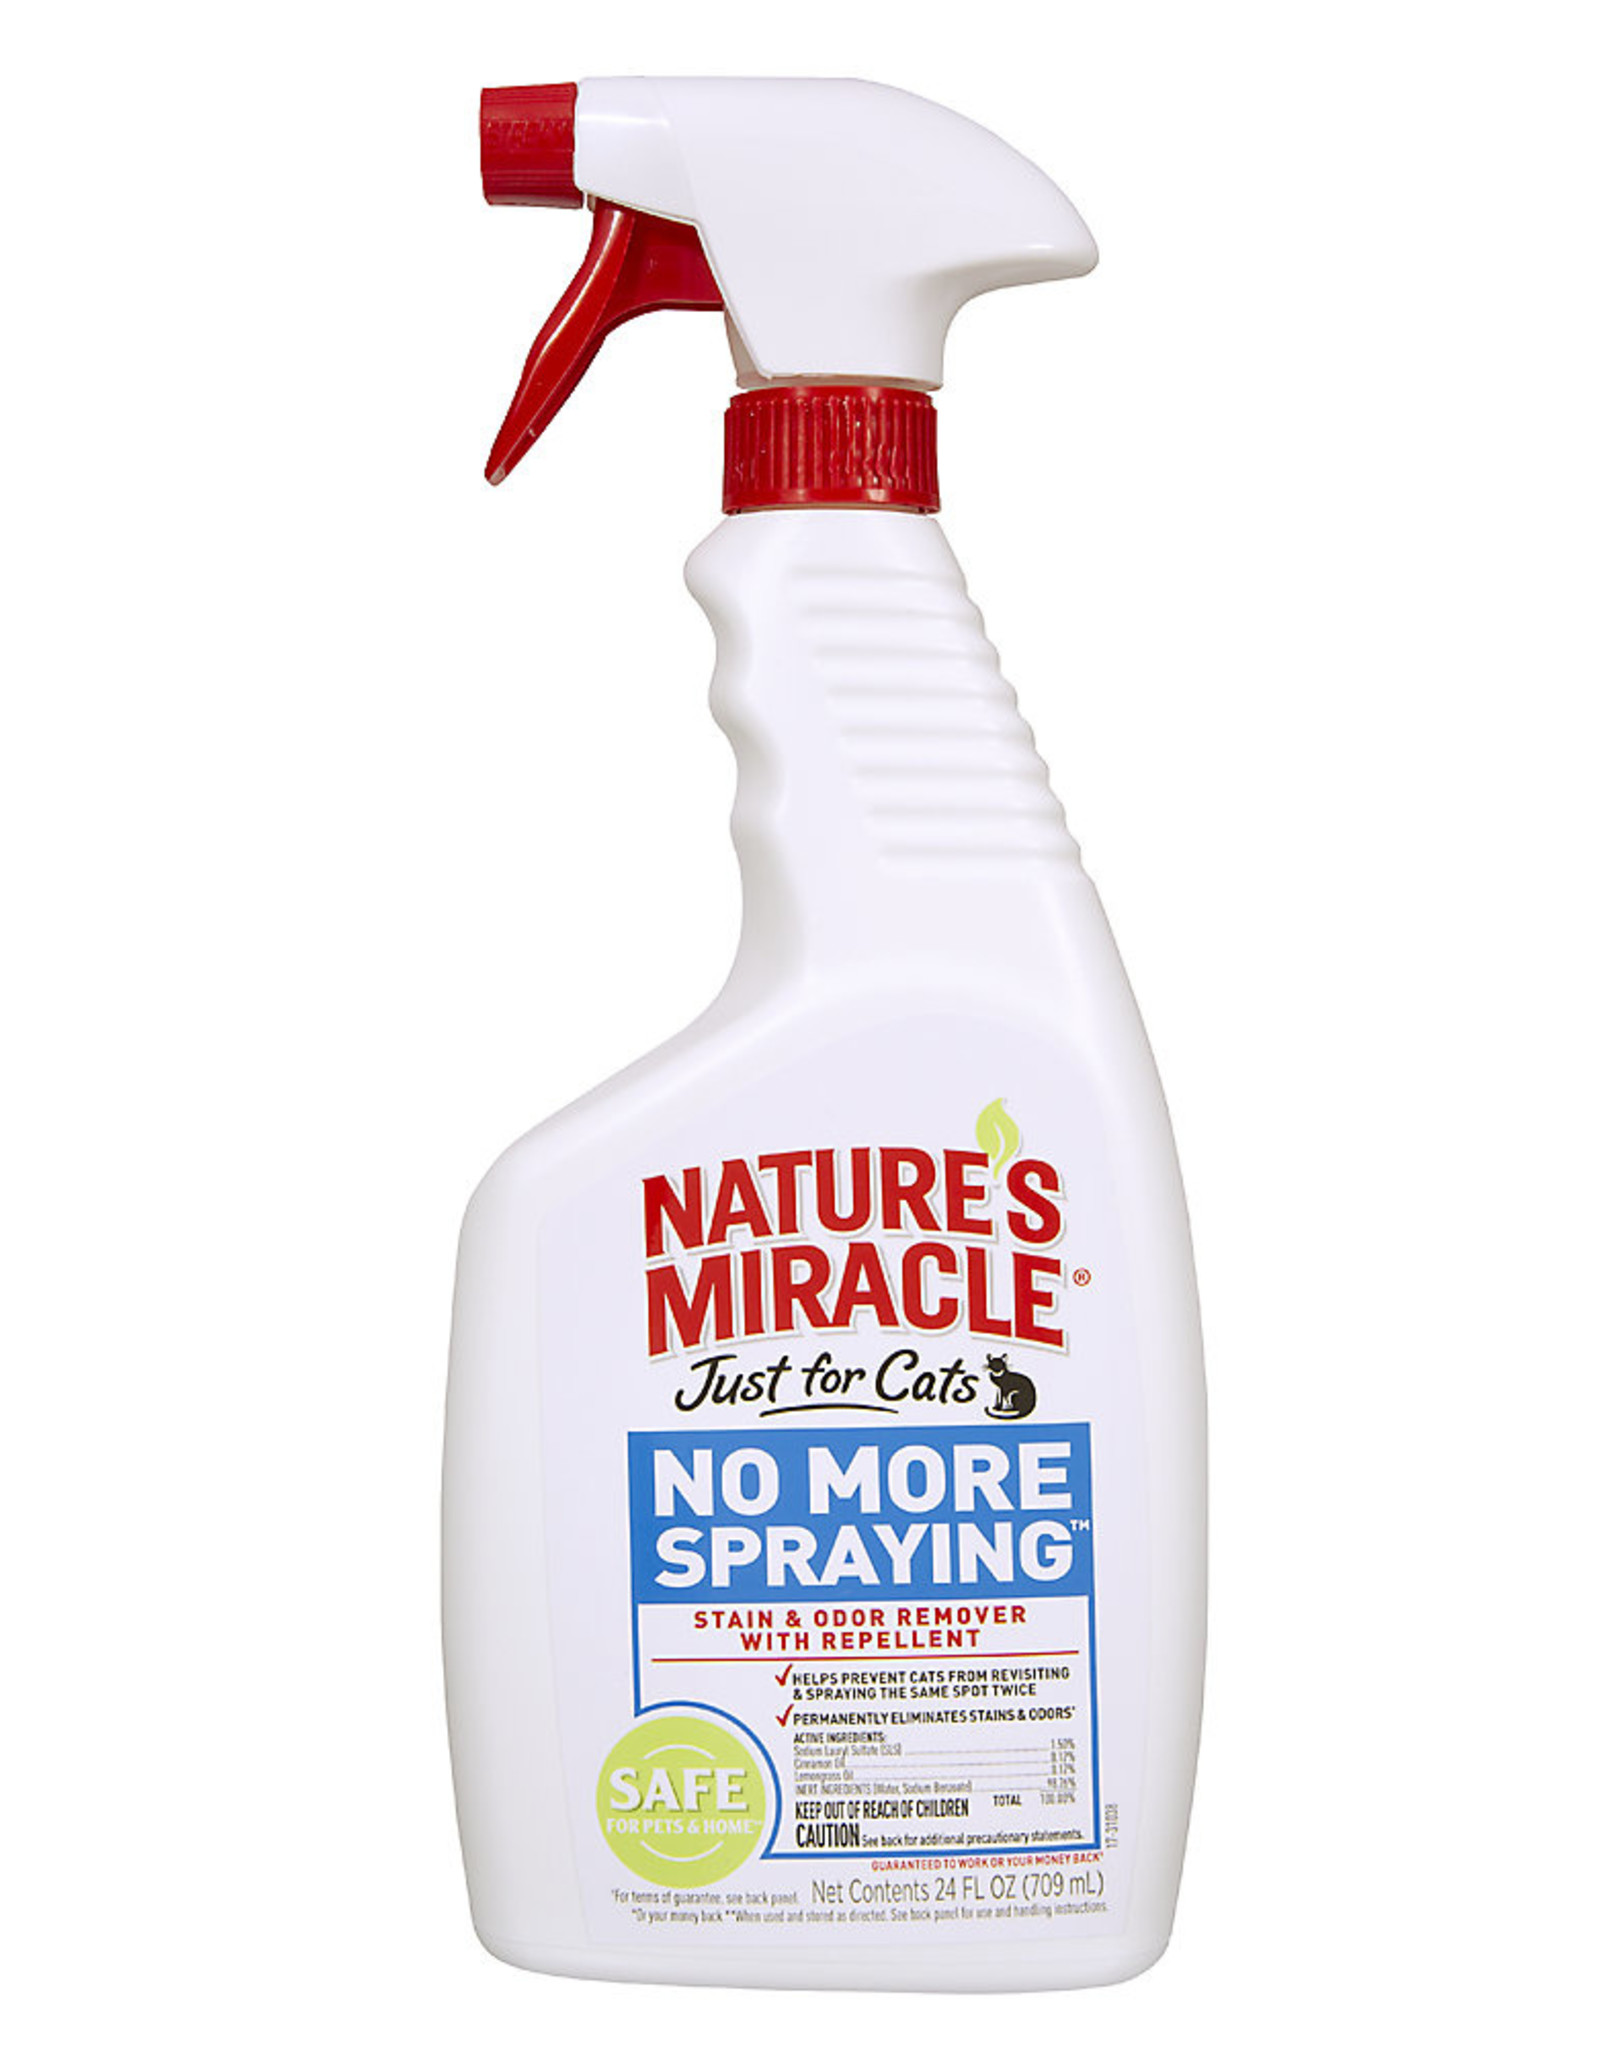 Natures Miracle Just for Cats S&O Remover Spray 32oz